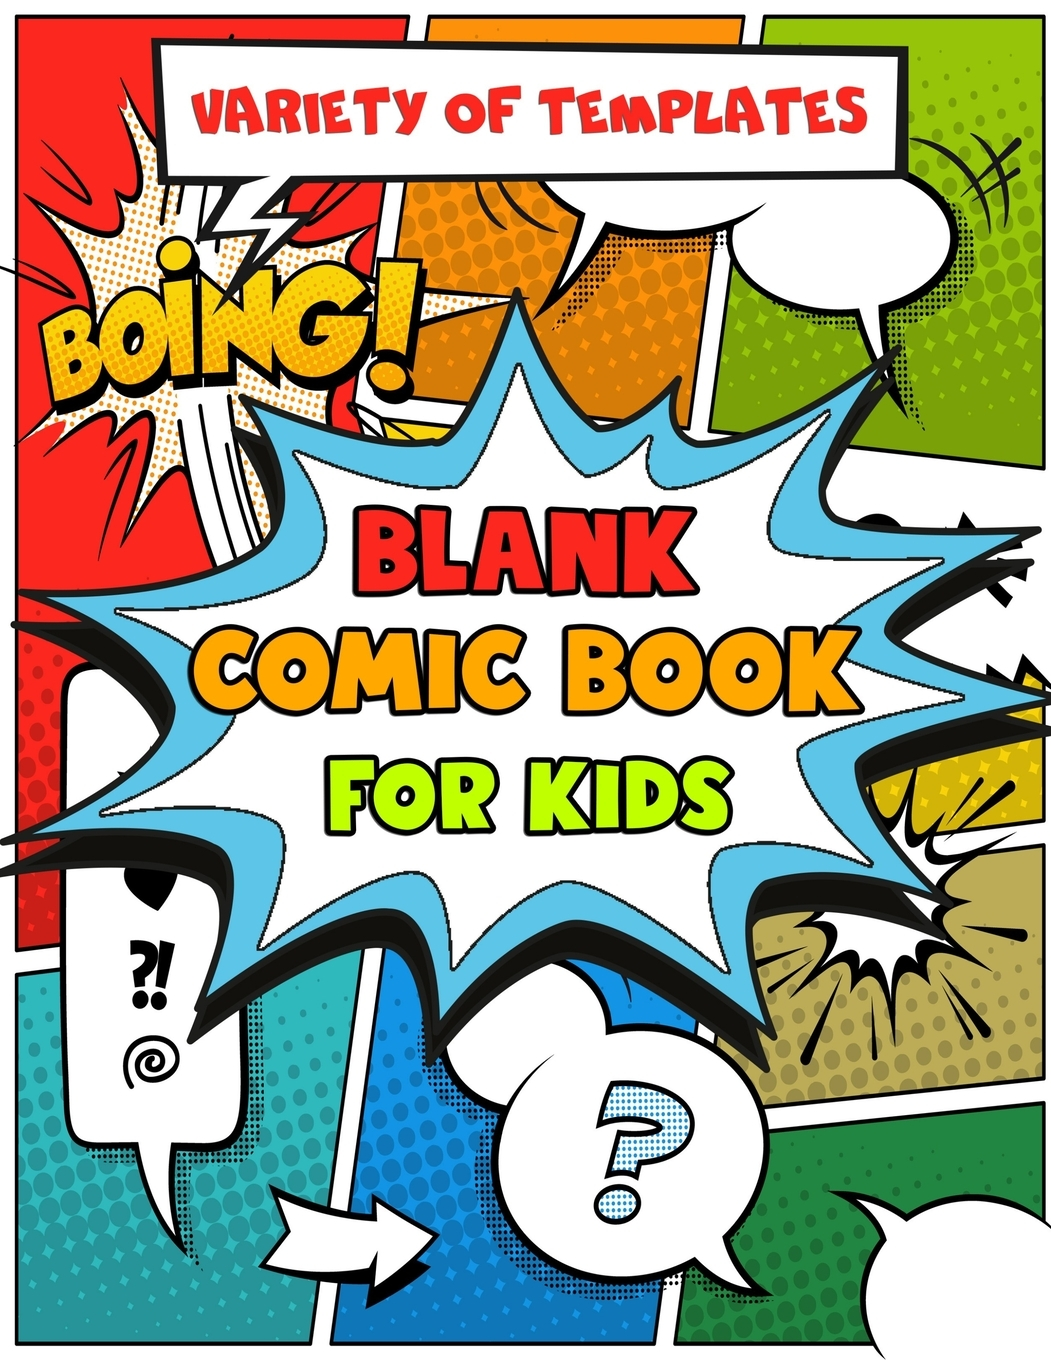 Blank Comic Book For Kids Variety Of Templates Children S